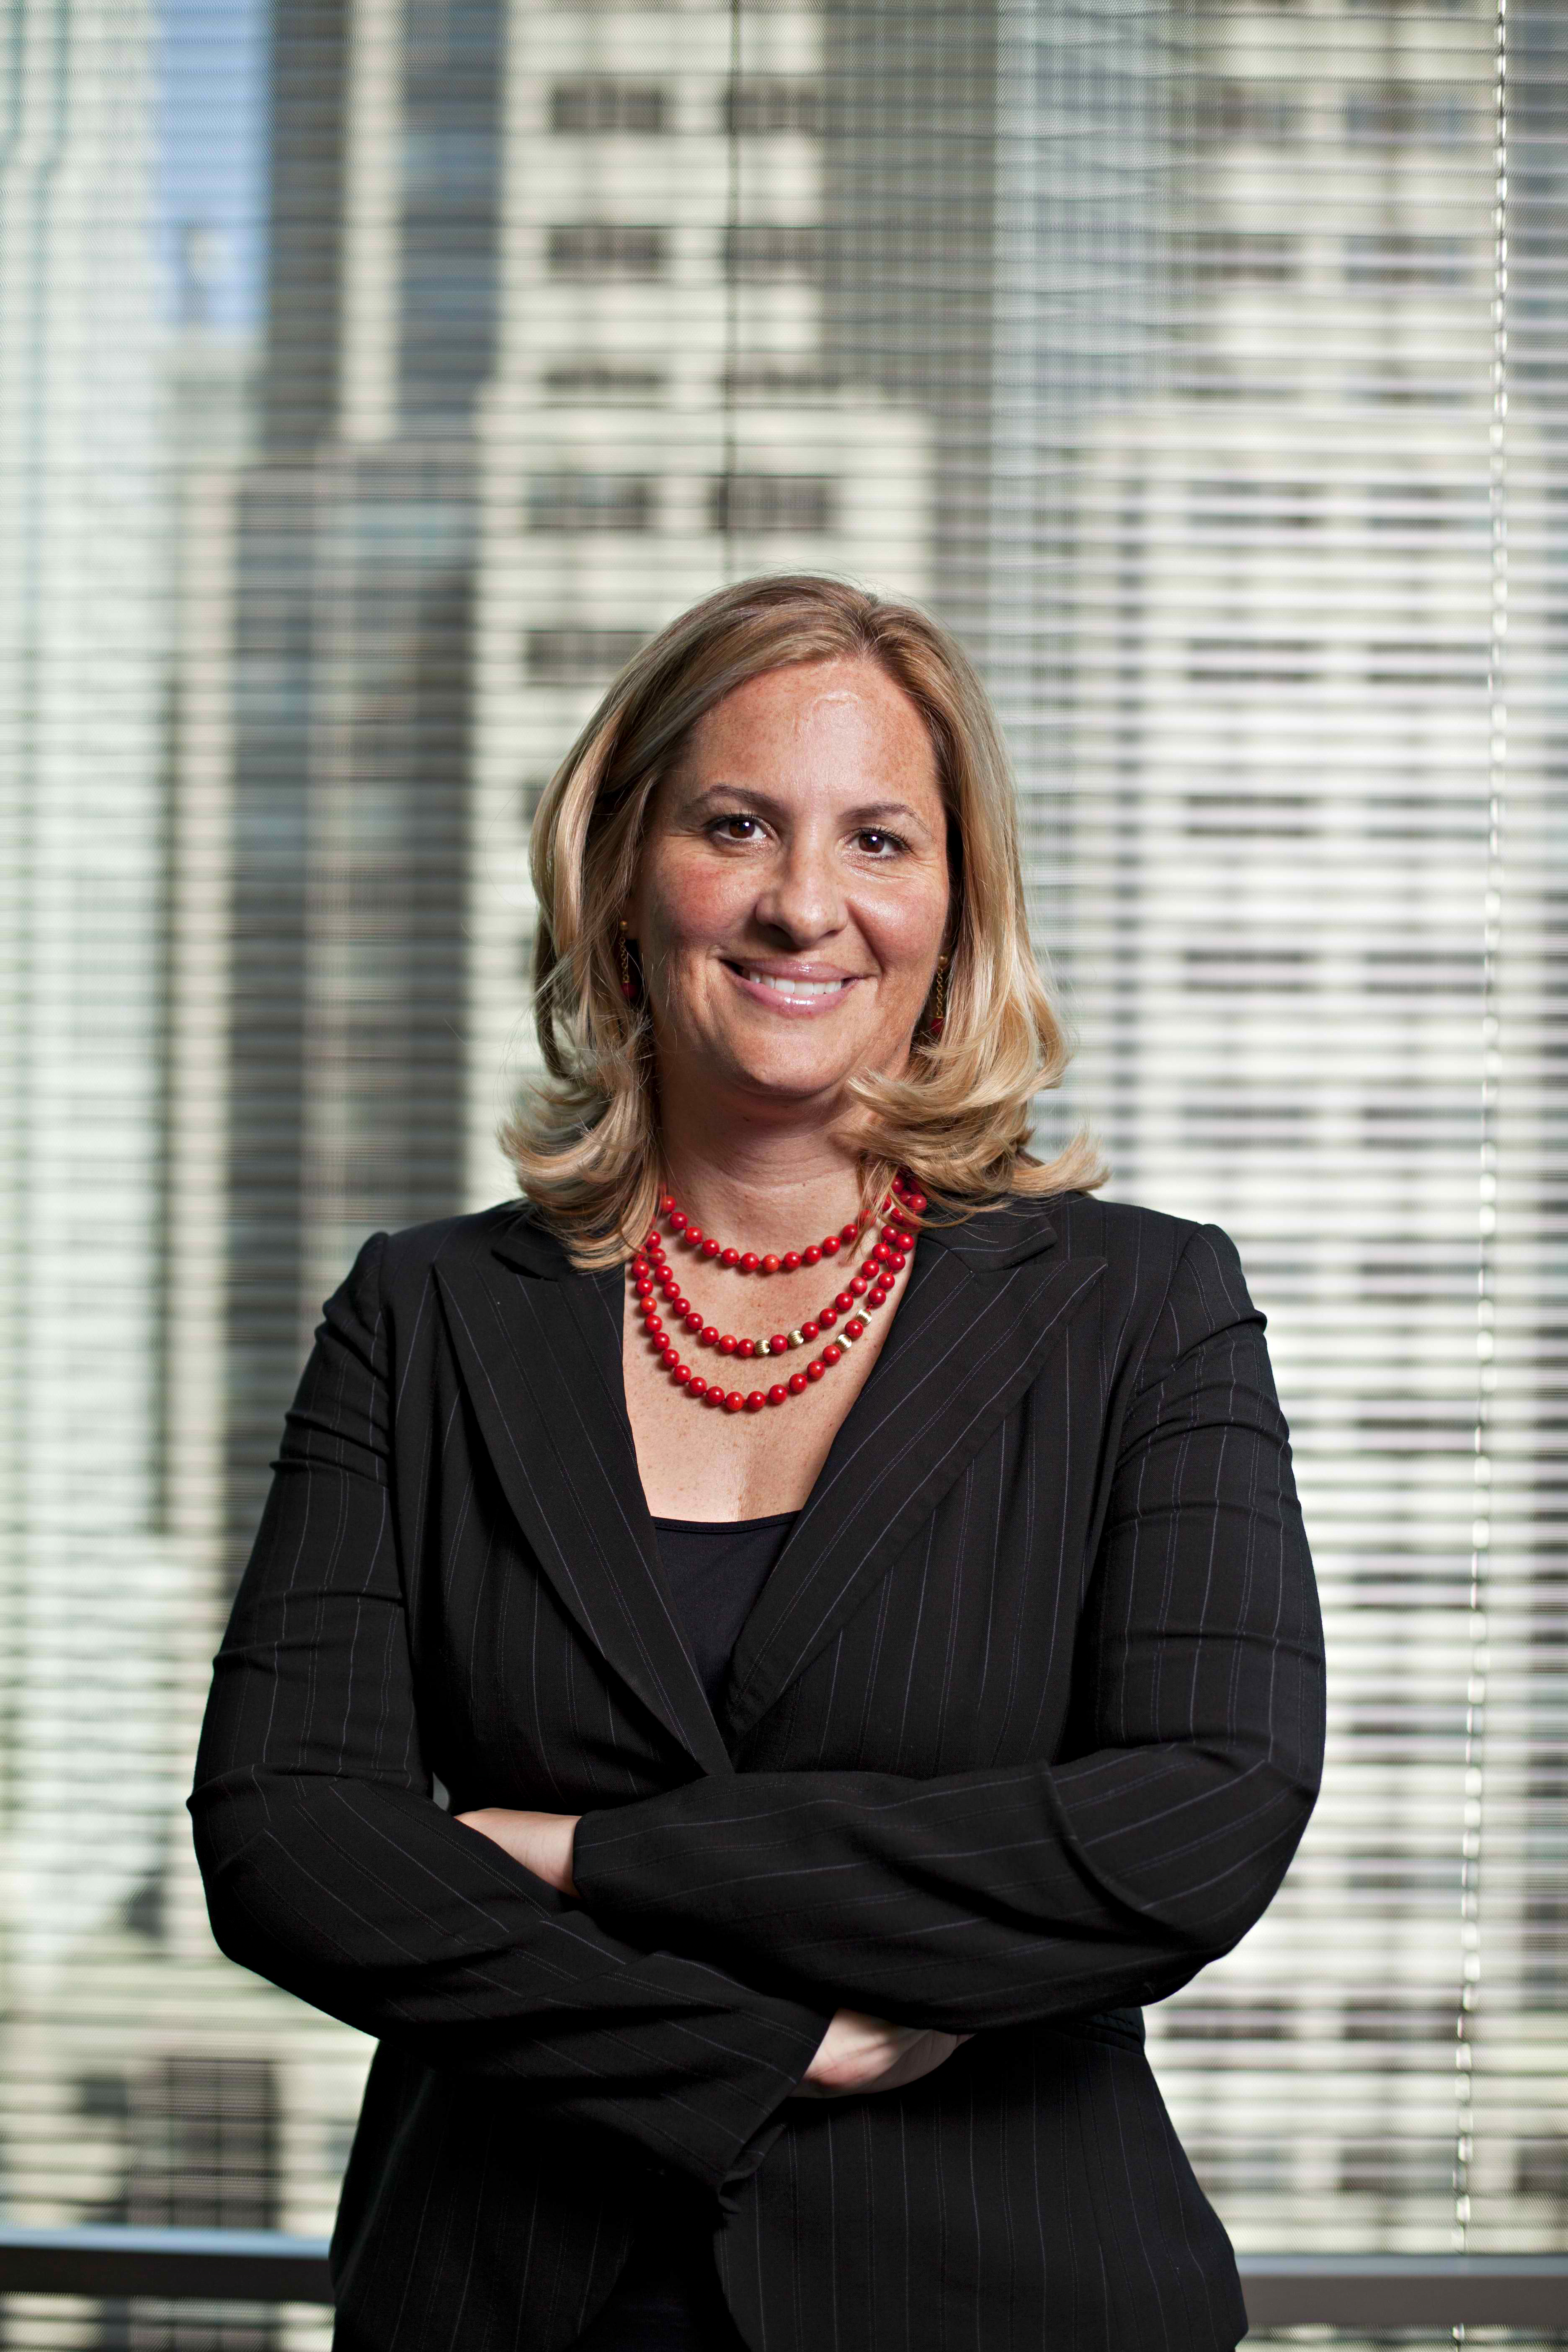 Jennifer Steinmann, Deputy CEO and CTO at Deloitte